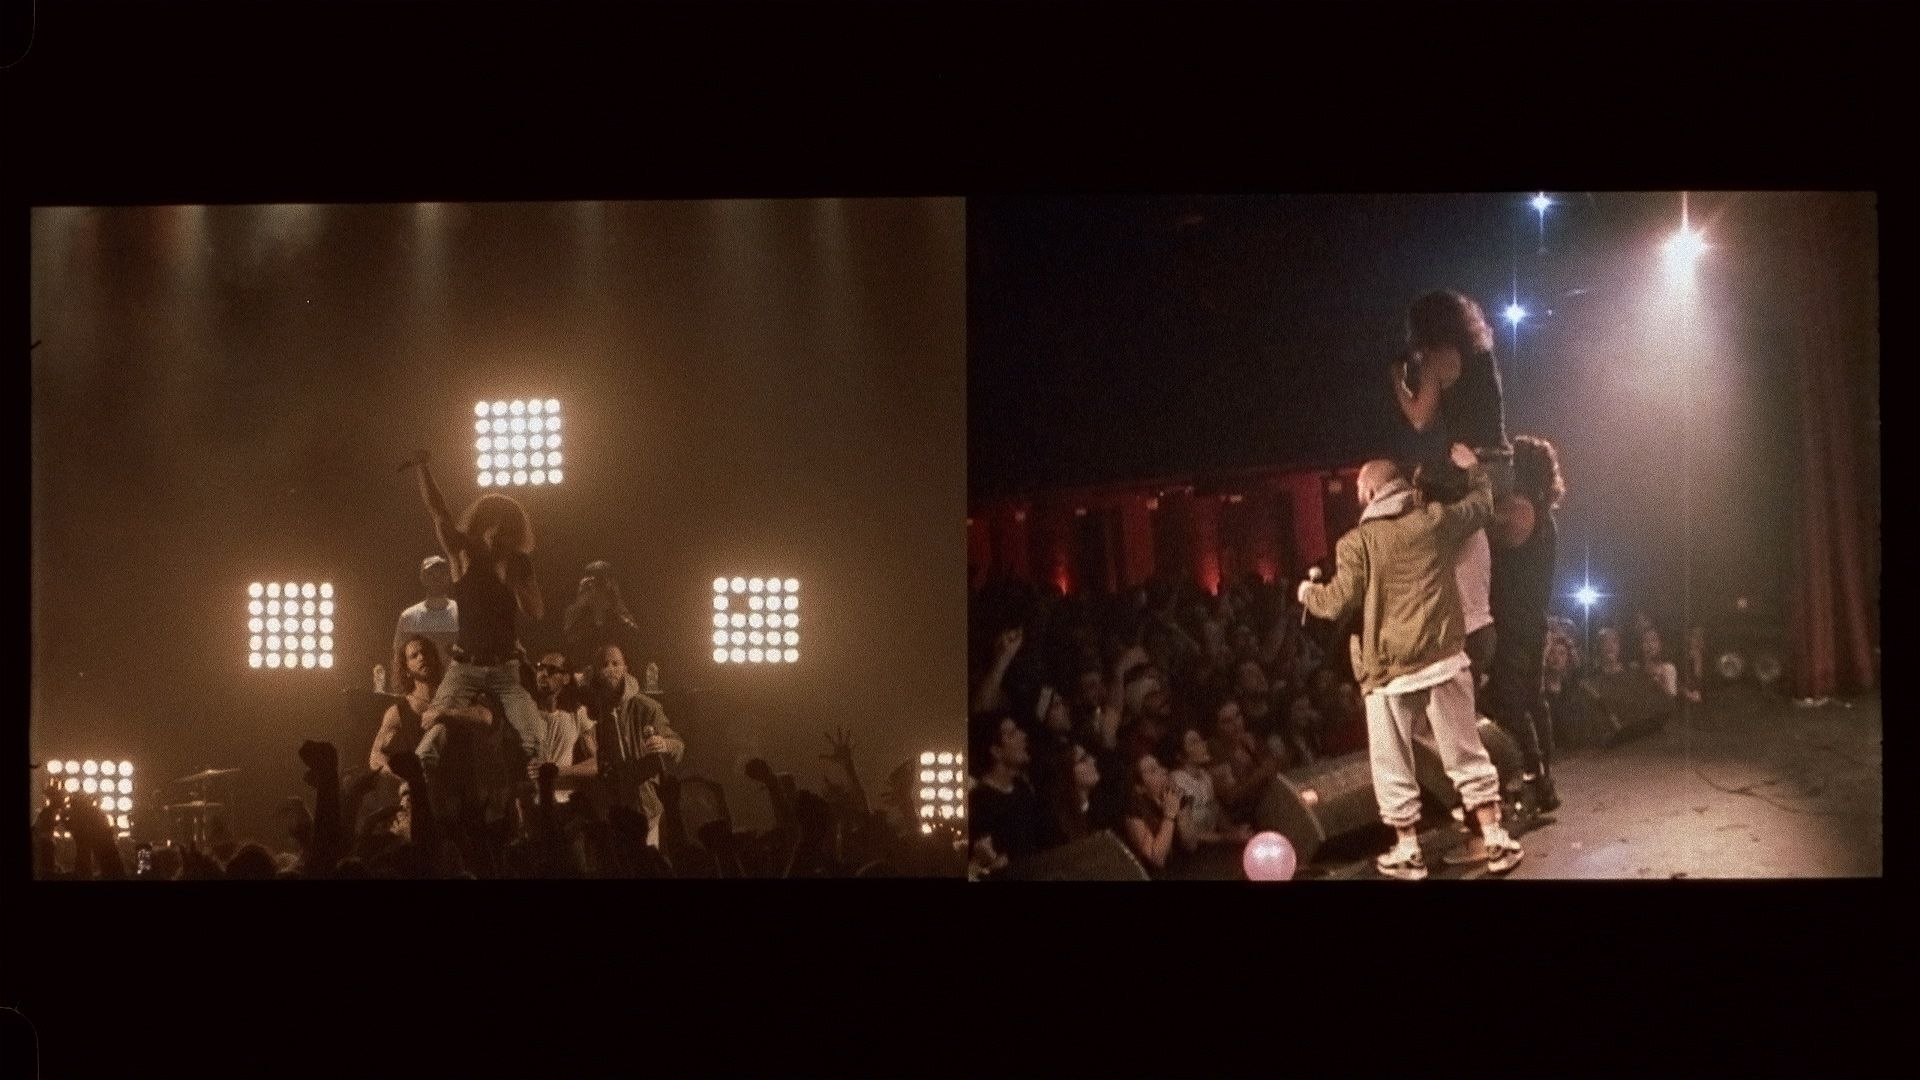 Alaclair Ensemble singer sitting on shoulders of his bandmates while singing fist up in the air for L'Osstidfilm documentary filmed by Vincent Ruel-Cote from Les Gamins about L'Osstidtour